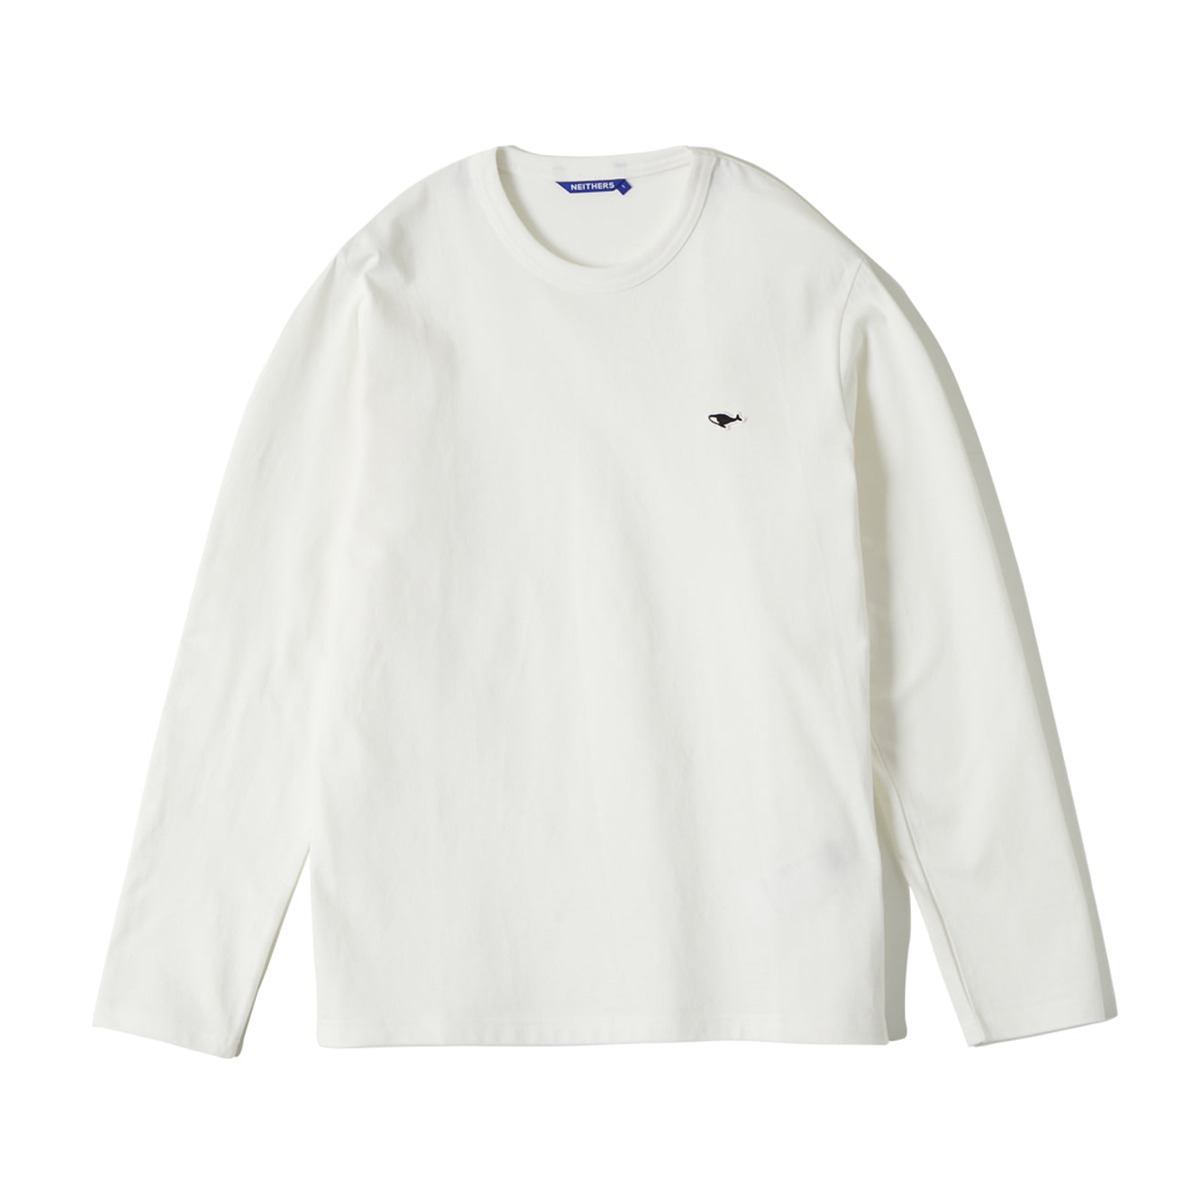 [NEITHERS] S L/S T-SHIRT 'OFF WHITE'